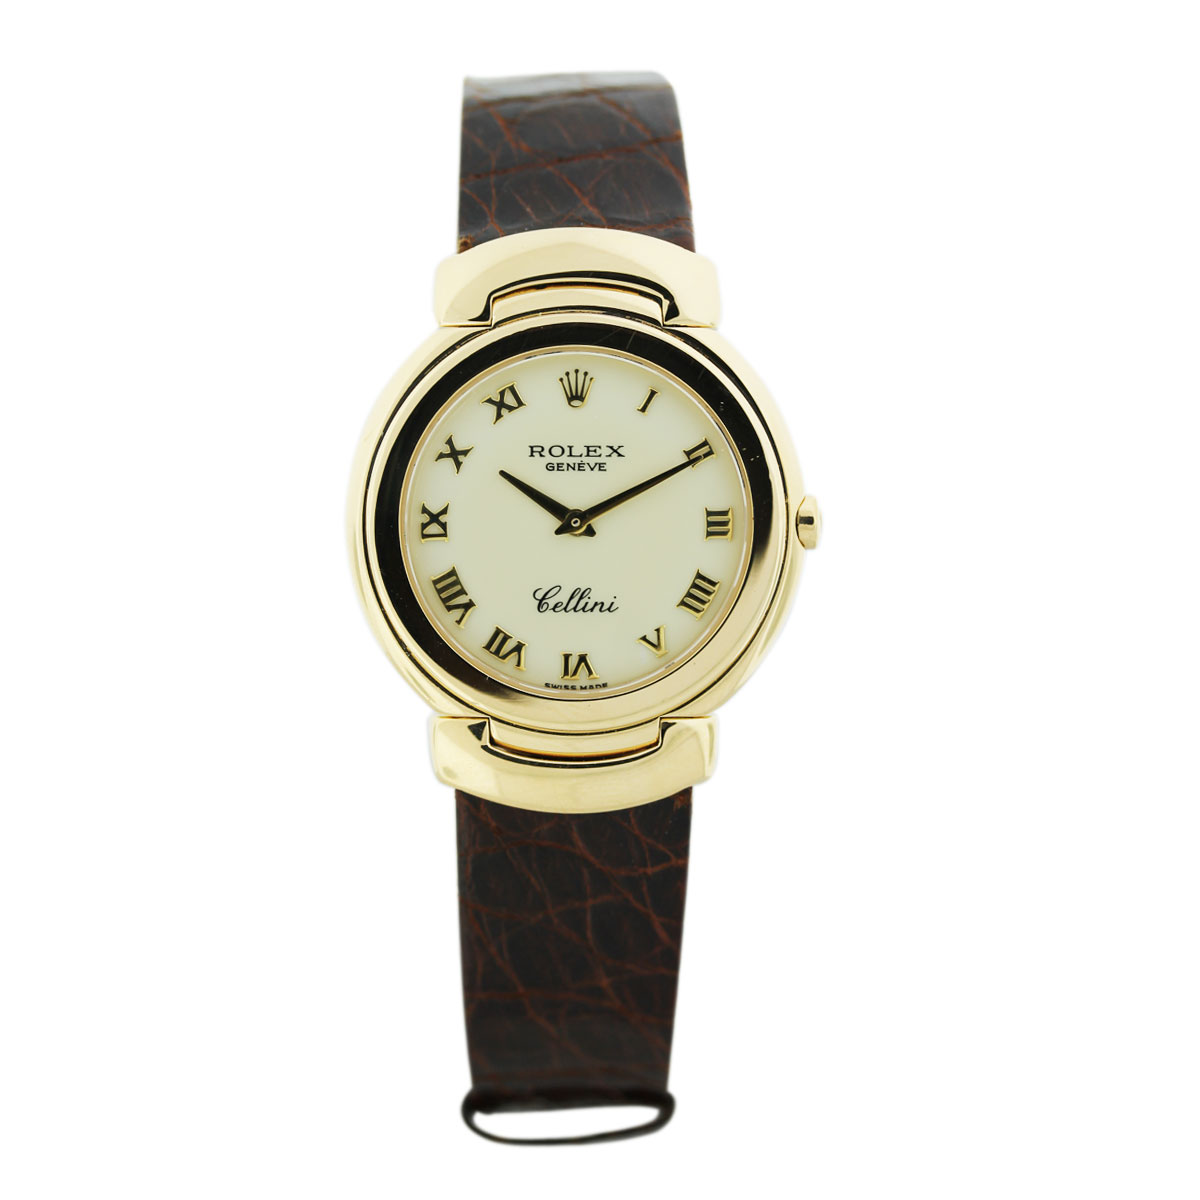 Rolex cellini 18k yellow gold cream dial on leather strap boca raton for Rolex cellini